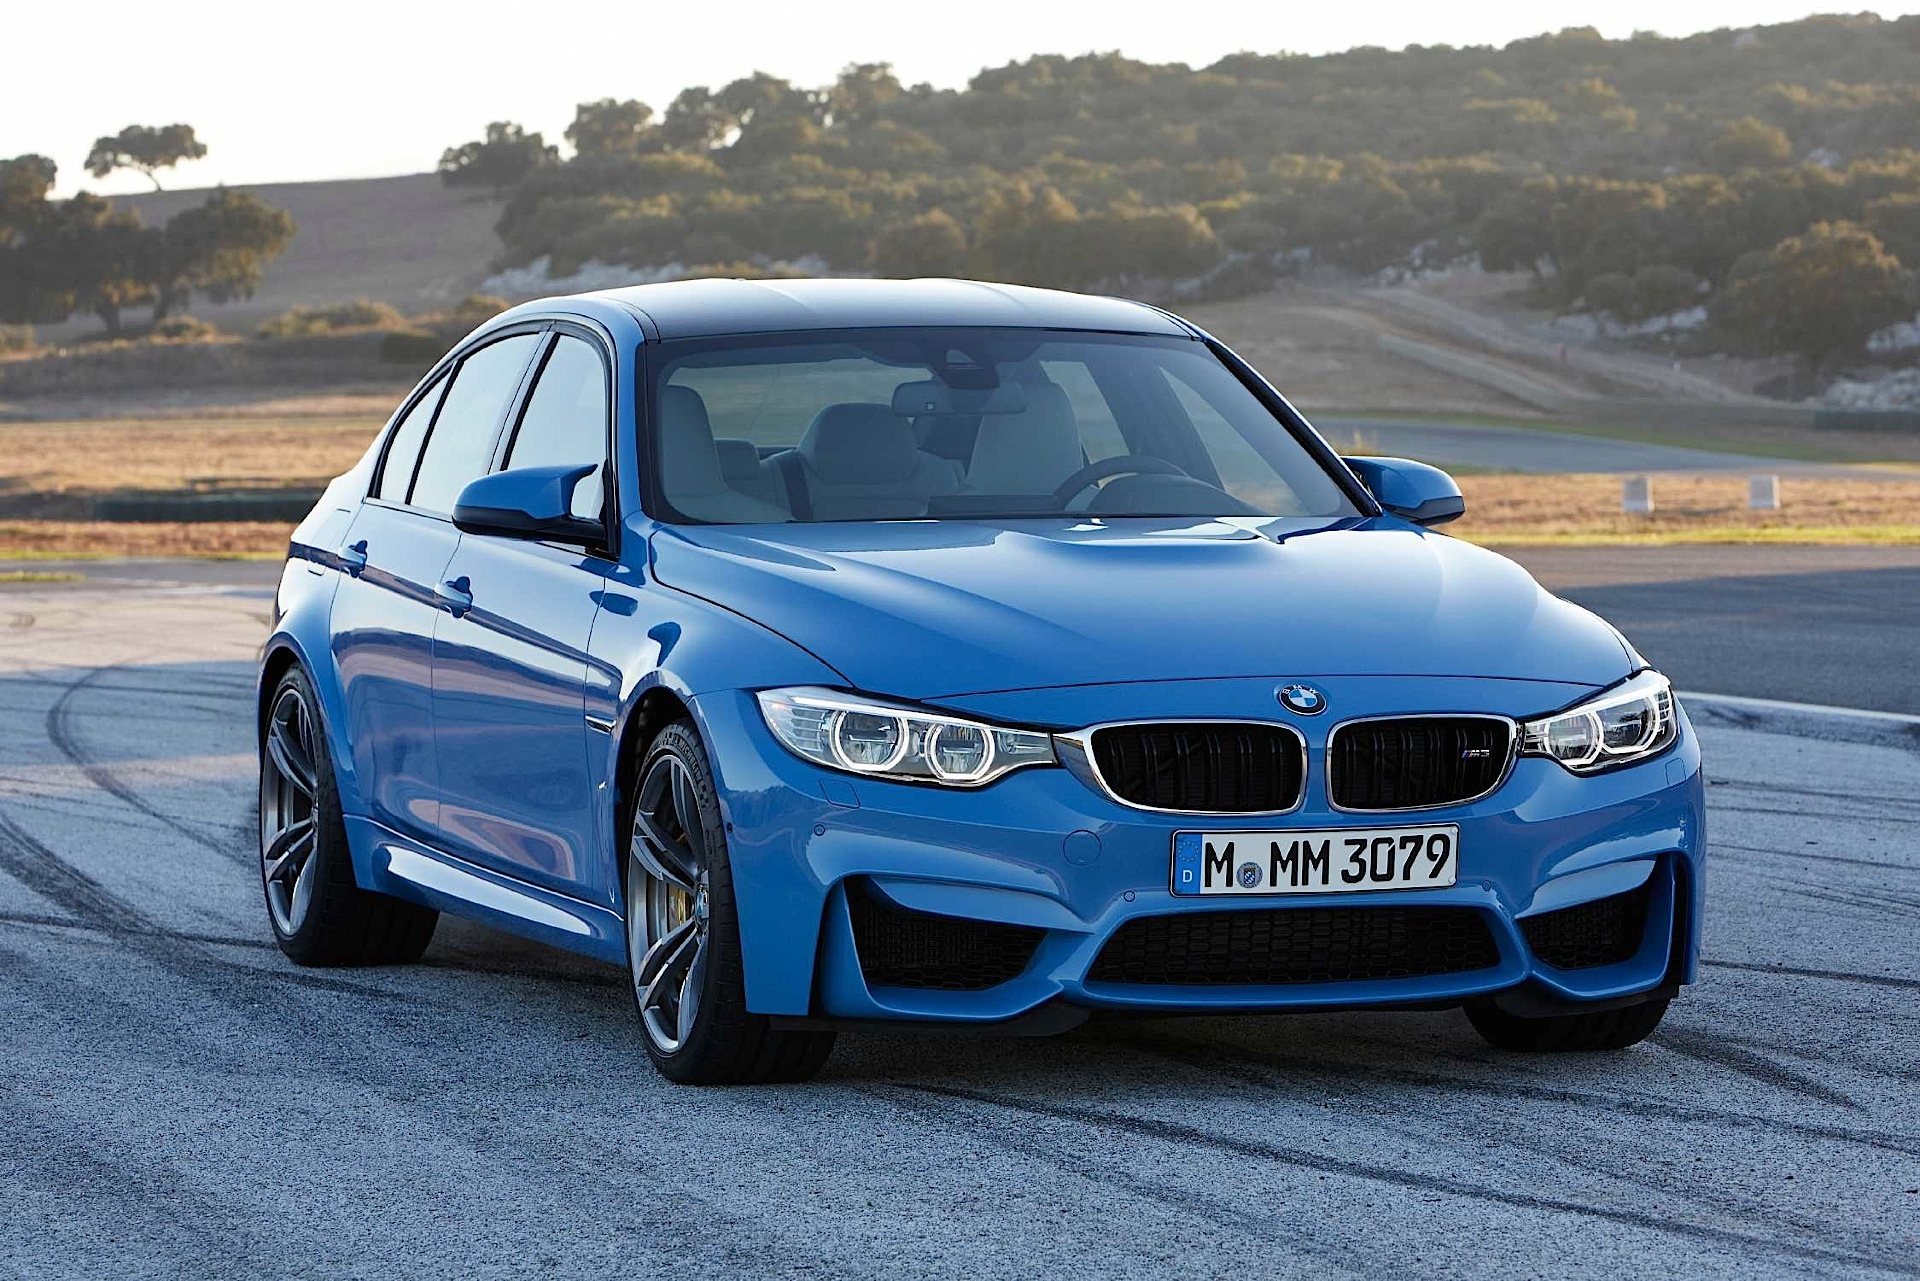 M3 F80 Bmw Wiki Fandom Powered By Wikia